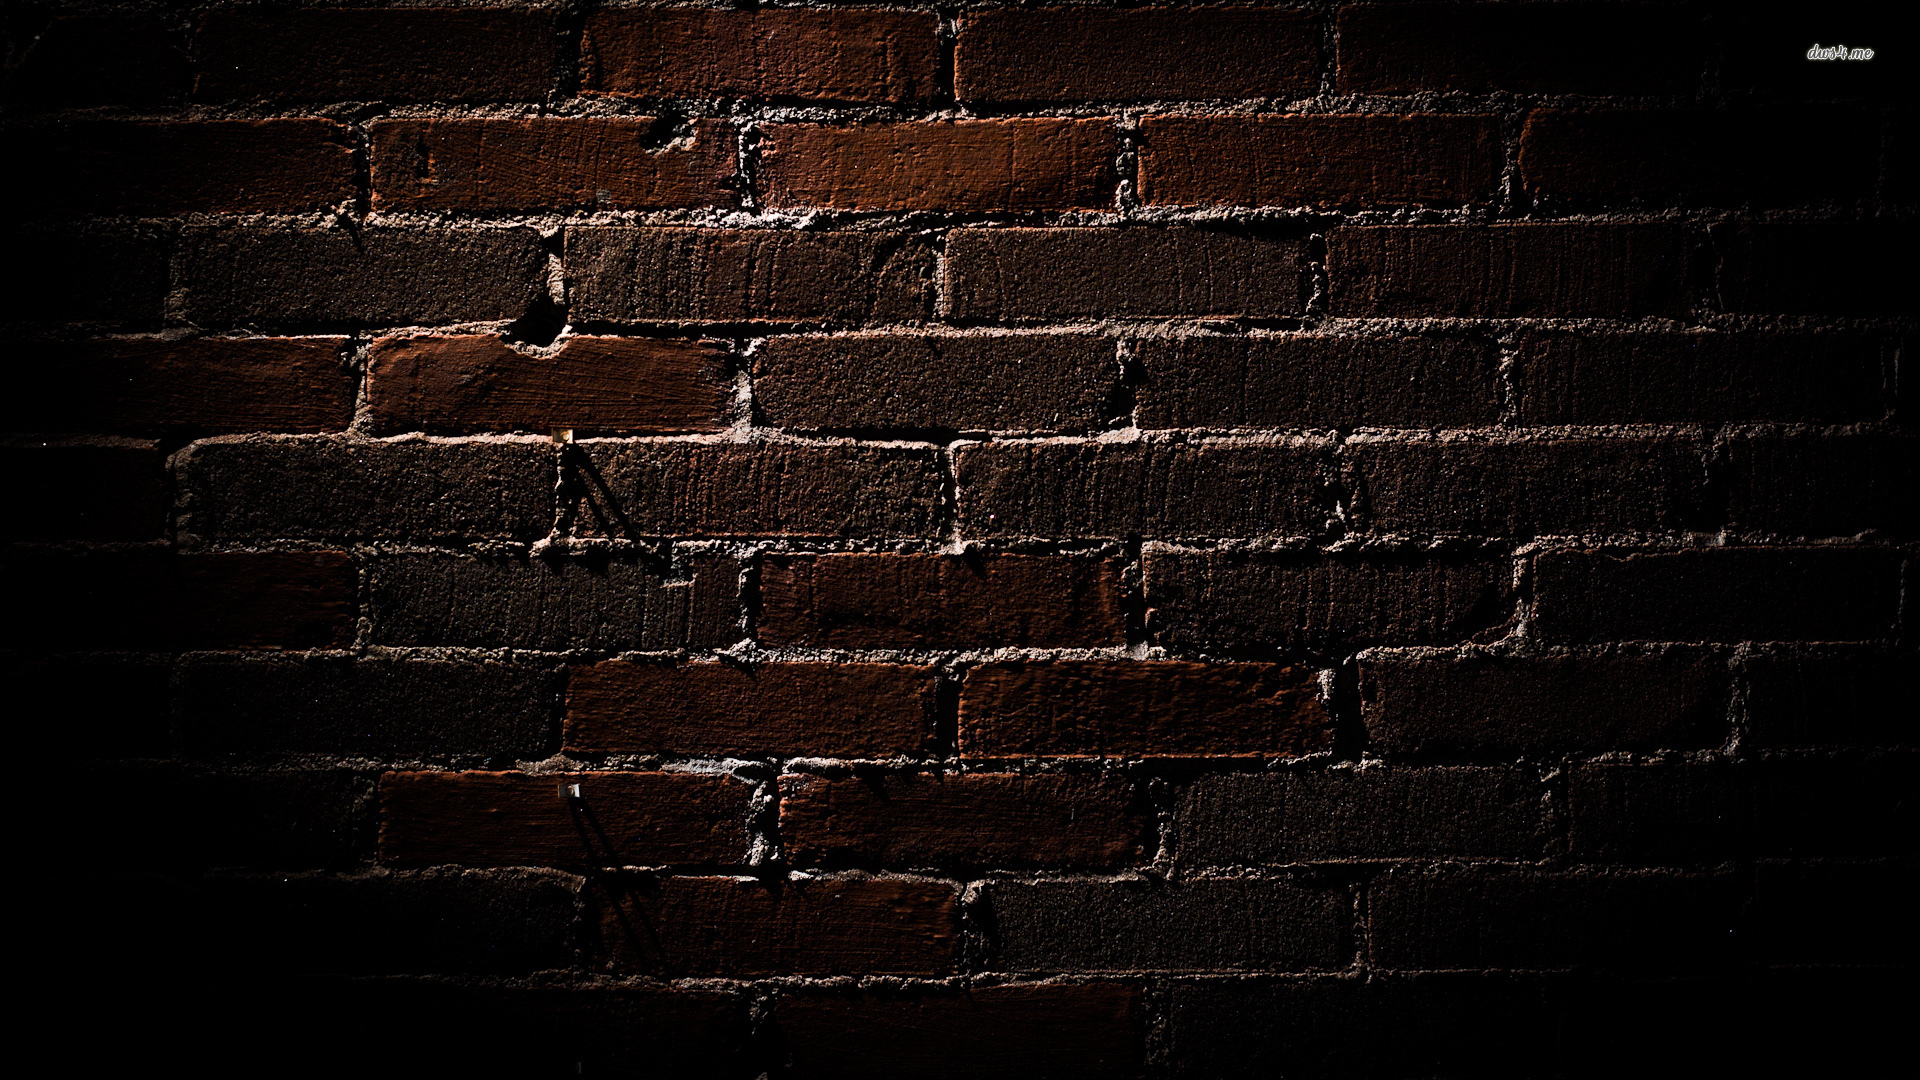 Brick wallpaper dark hd desktop wallpapers 4k hd for Black 3d brick wallpaper